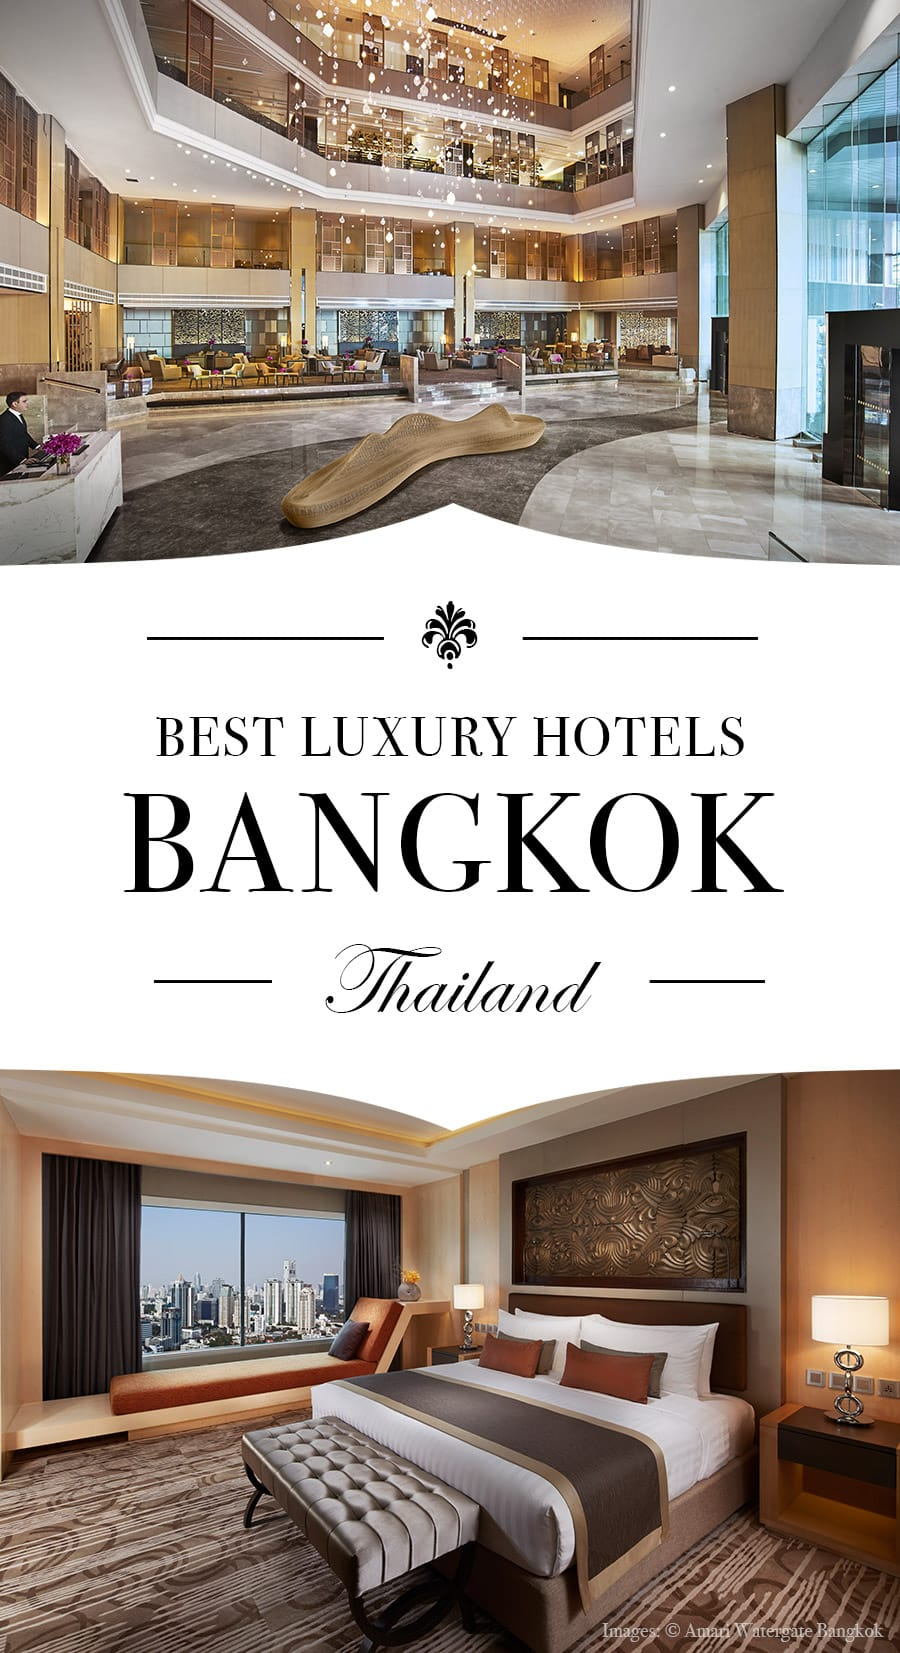 Best Luxury Hotels in Bangkok Thailand. Images: © Amari Watergate Bangkok